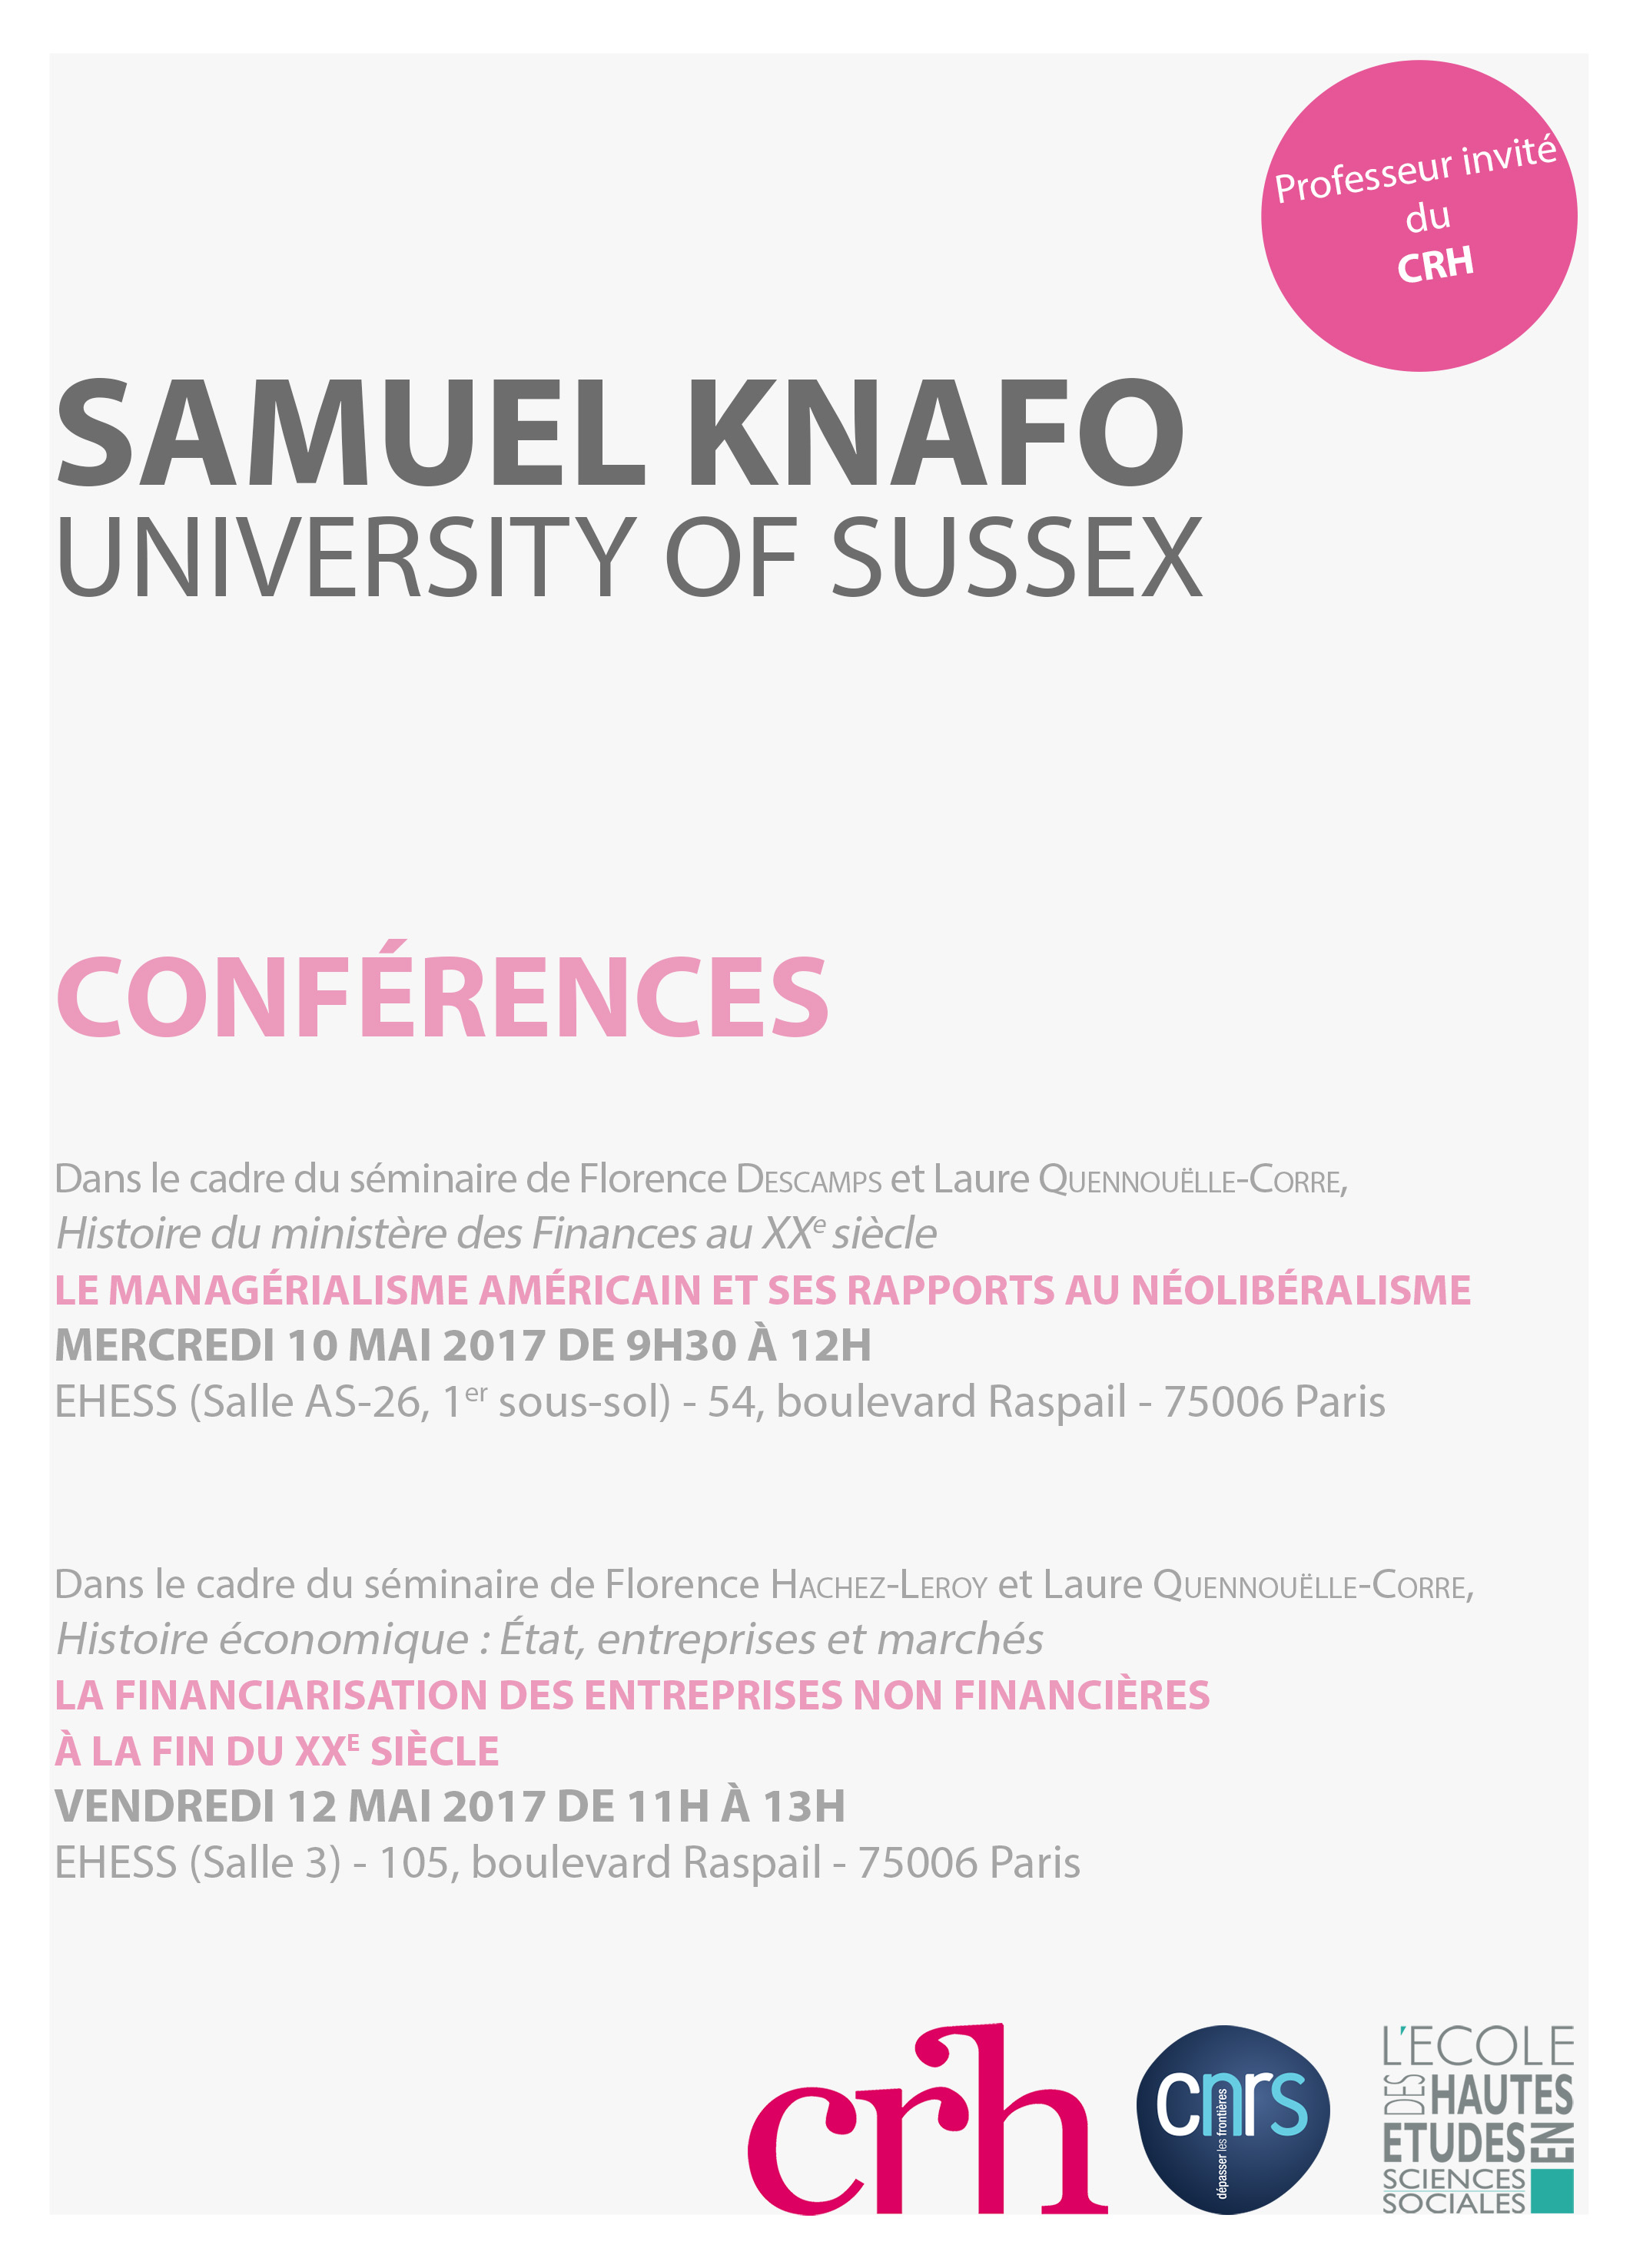 Samuel Knafo (University of Sussex)